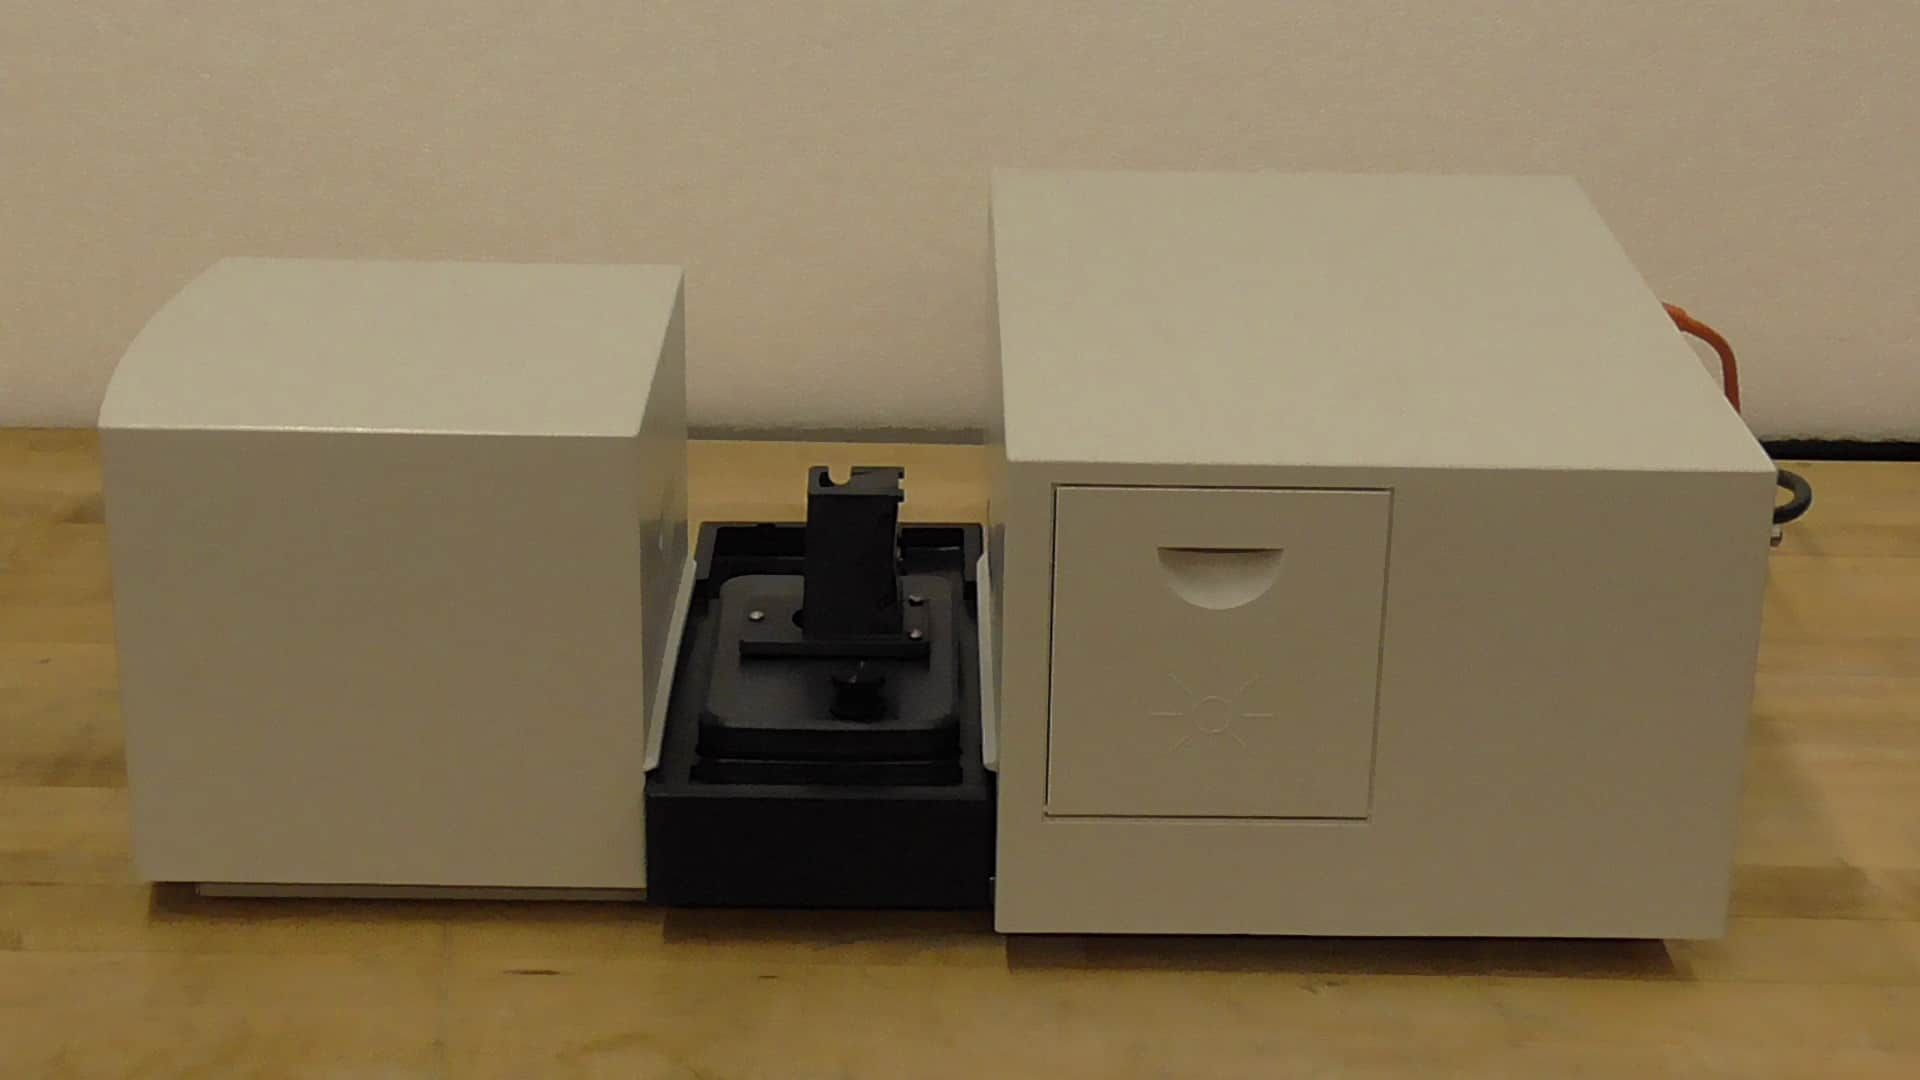 Agilent 8453 Single Cuvette Ultraviolet Visible Spectrophotometer with ThinkCentre PC loaded software, Monitor, Keyboard and Mouse